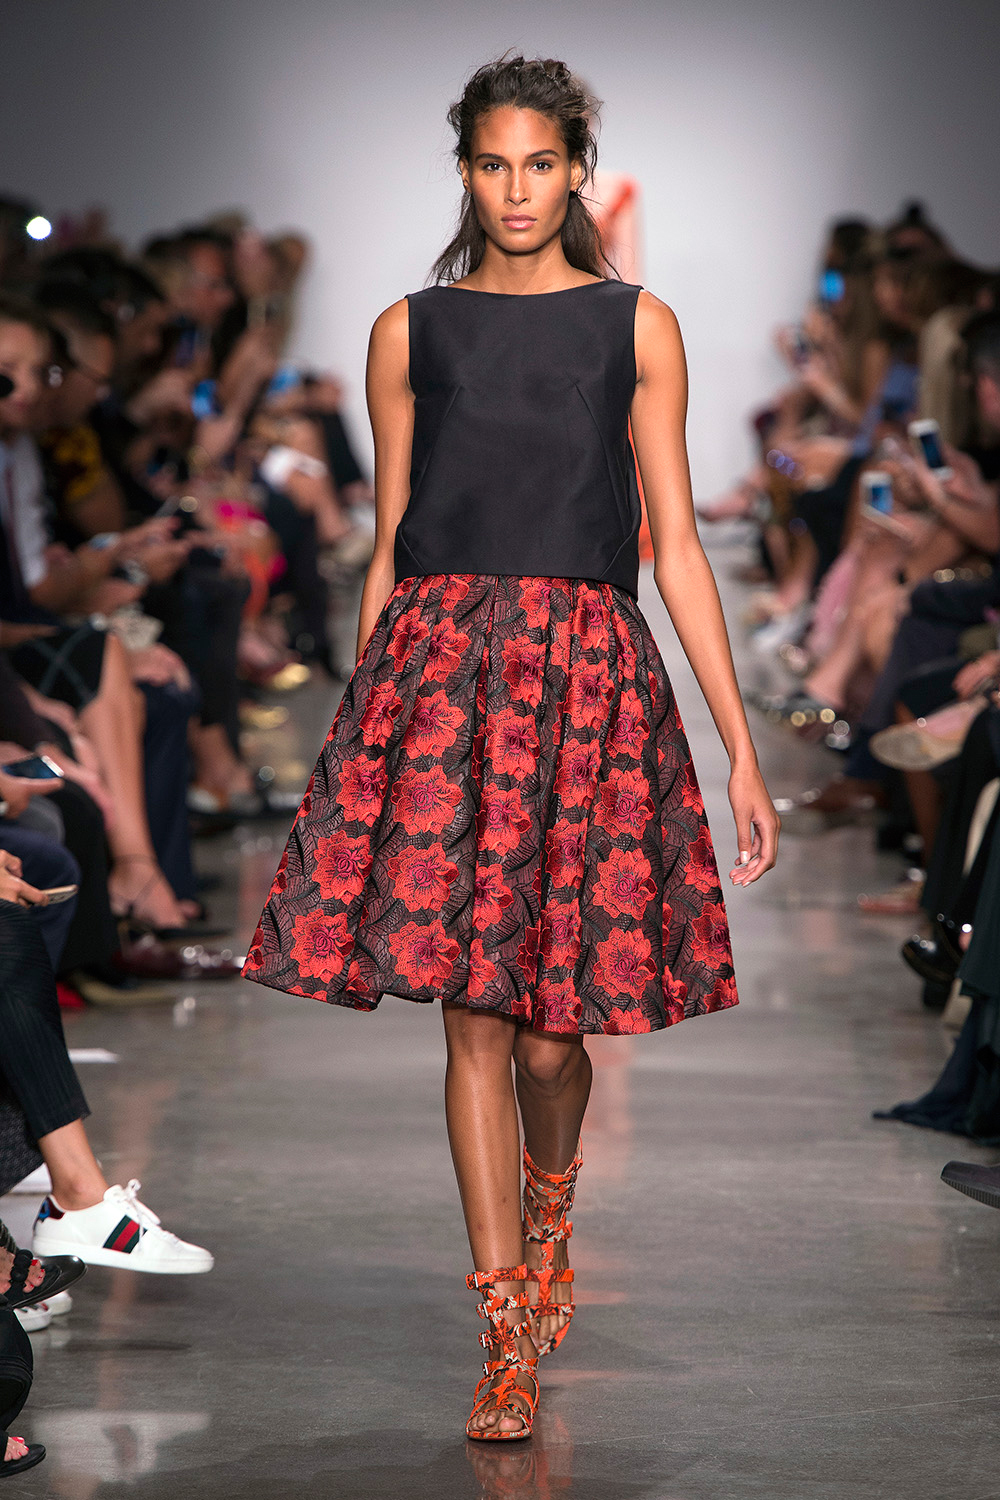 Look 5: Red and Black Floral Skirt with Black Top